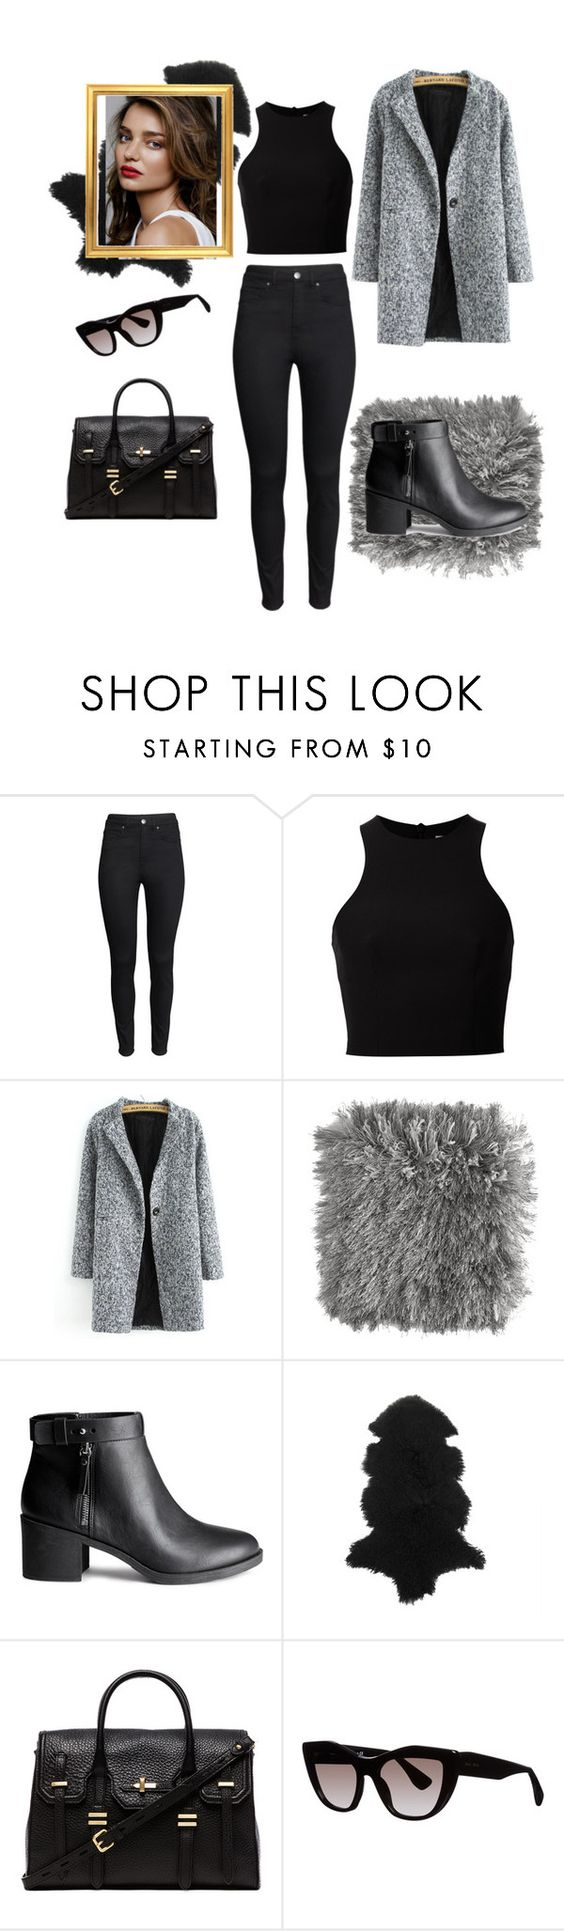 """Gray Day"" by gold-label ❤ liked on Polyvore featuring H&M, T By Alexander Wang, Pier 1 Imports, Amara, Rebecca Minkoff and Miu Miu"